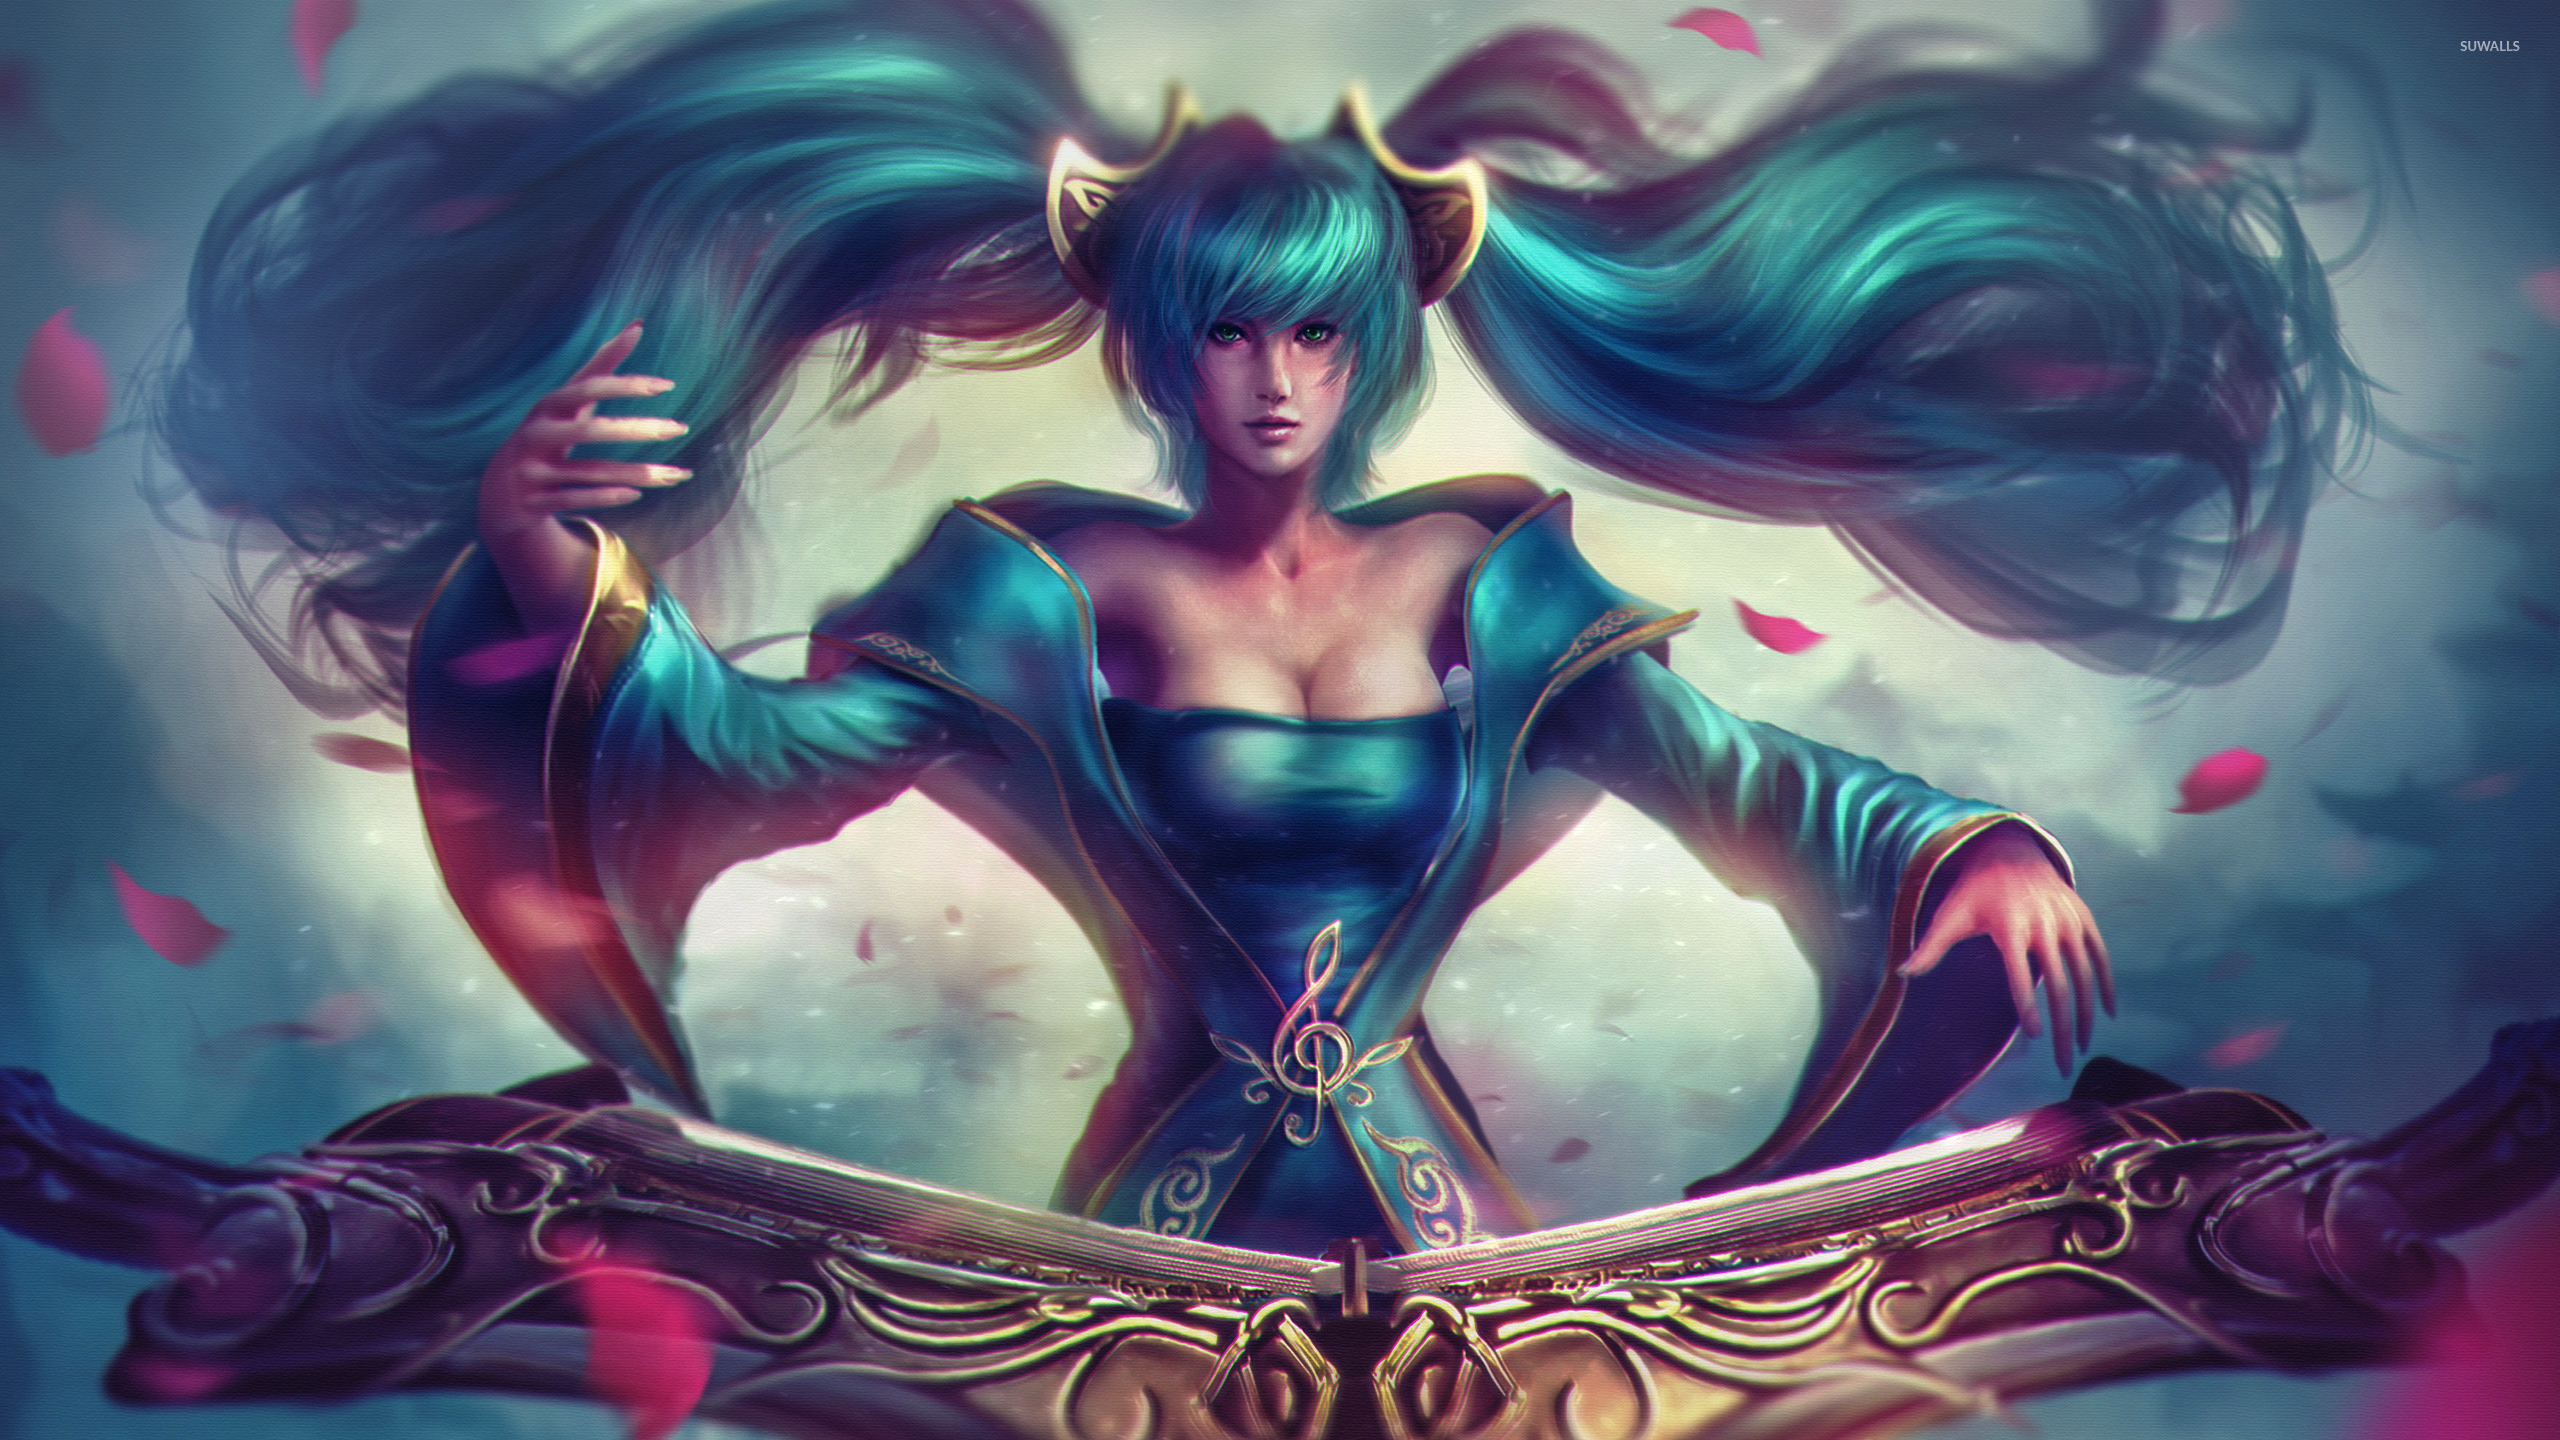 Sona - League of Legends [2] wallpaper - Game wallpapers ...